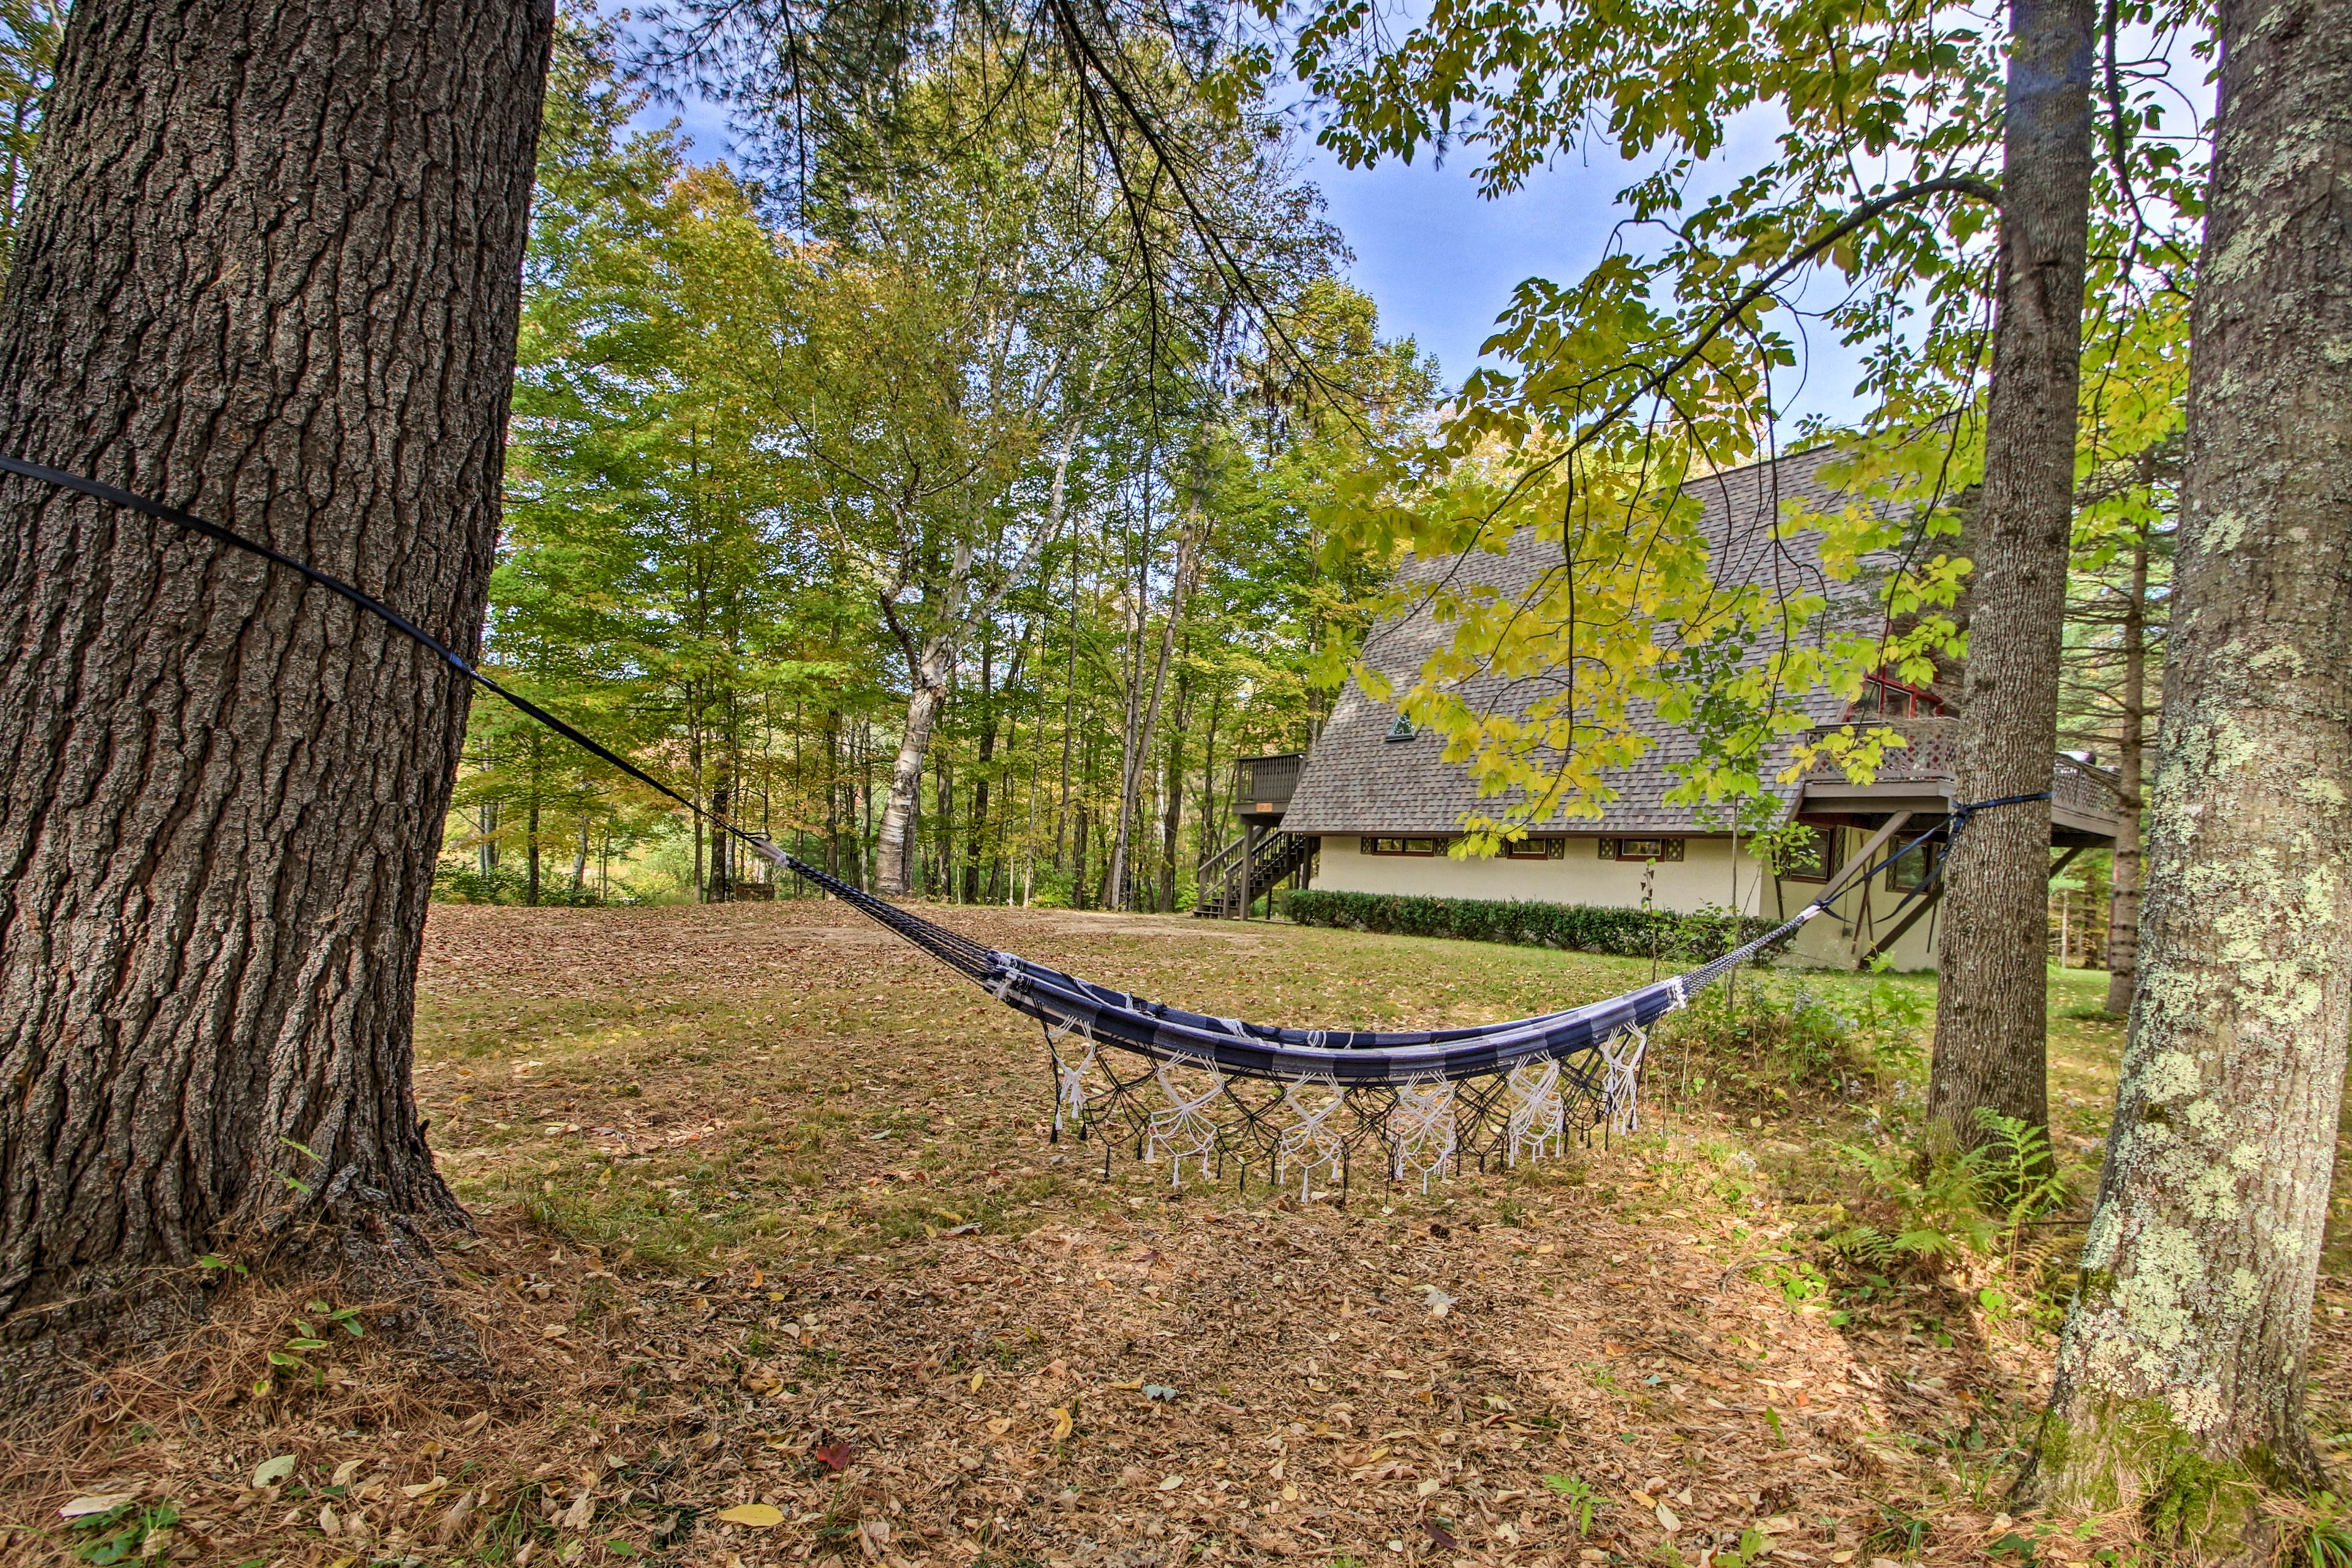 The hammock is ideal for lounging!